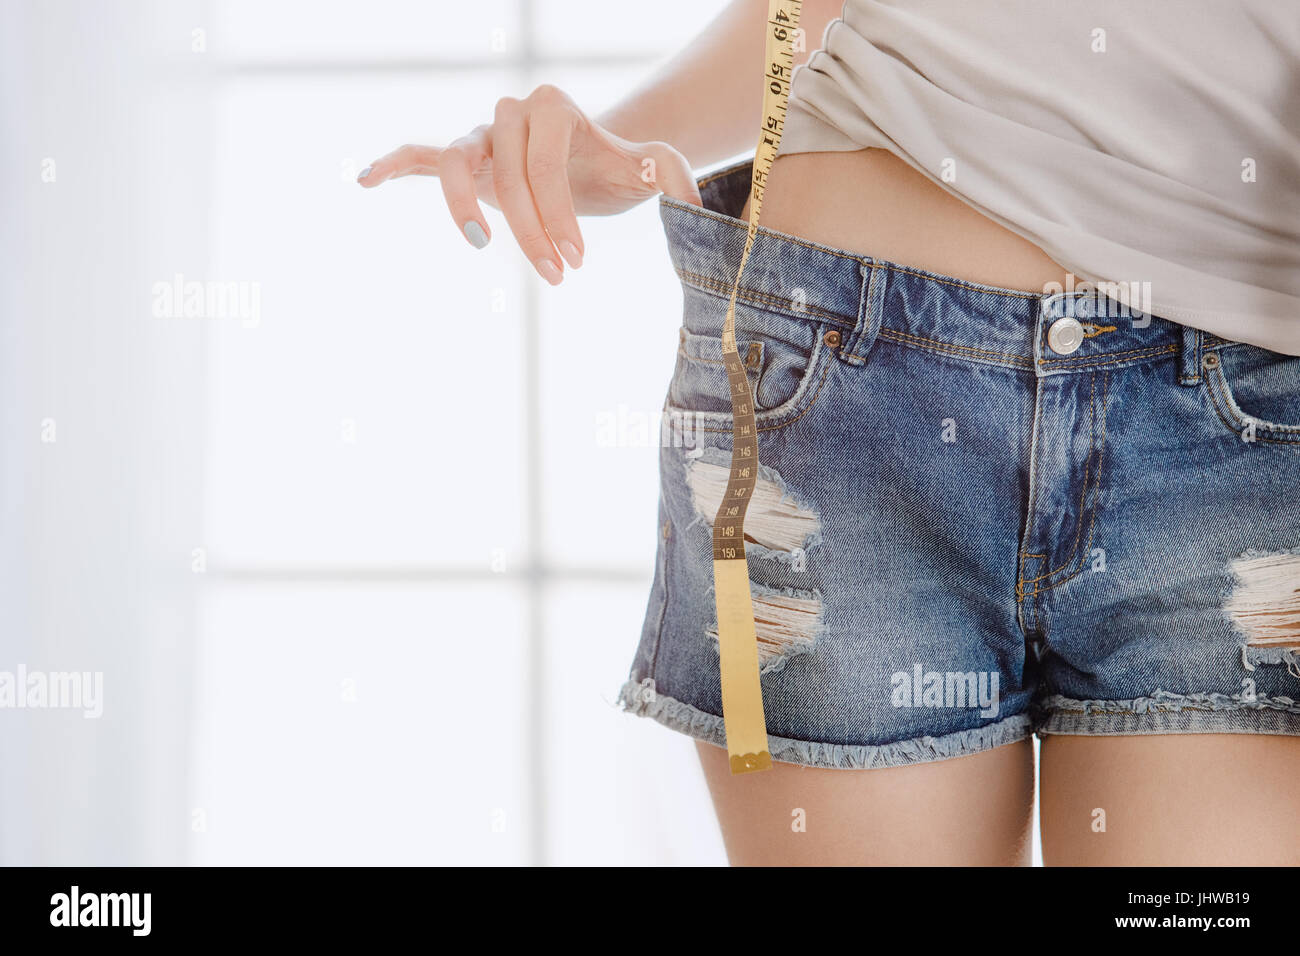 c942cdbd0 Young woman weight loss perfect body shape Stock Photo  148689557 ...